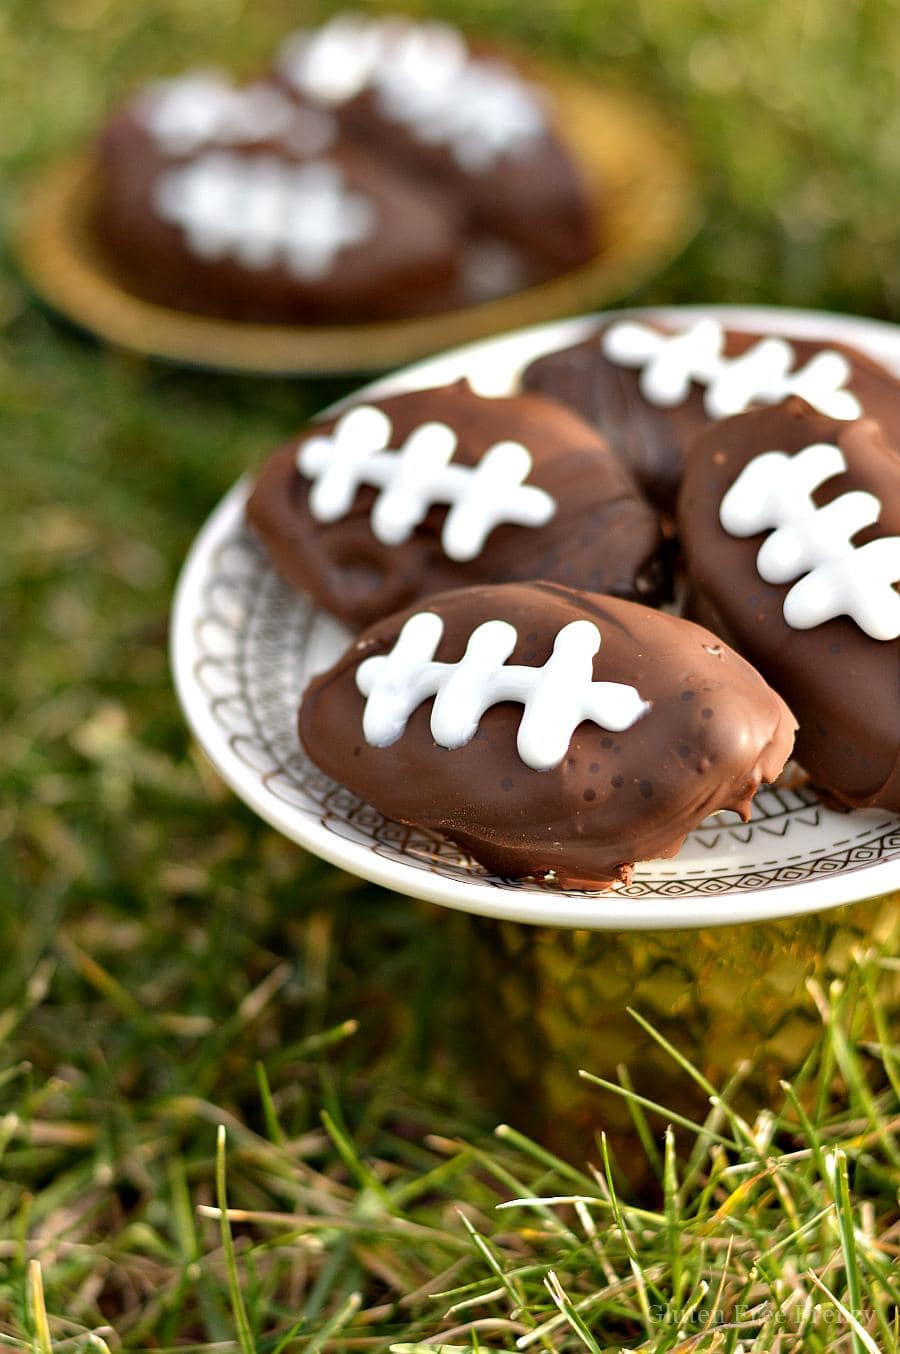 These gluten-free cookie dough footballs are perfect for your next sports night or Superbowl party. They are easy to make and everyone will love them!